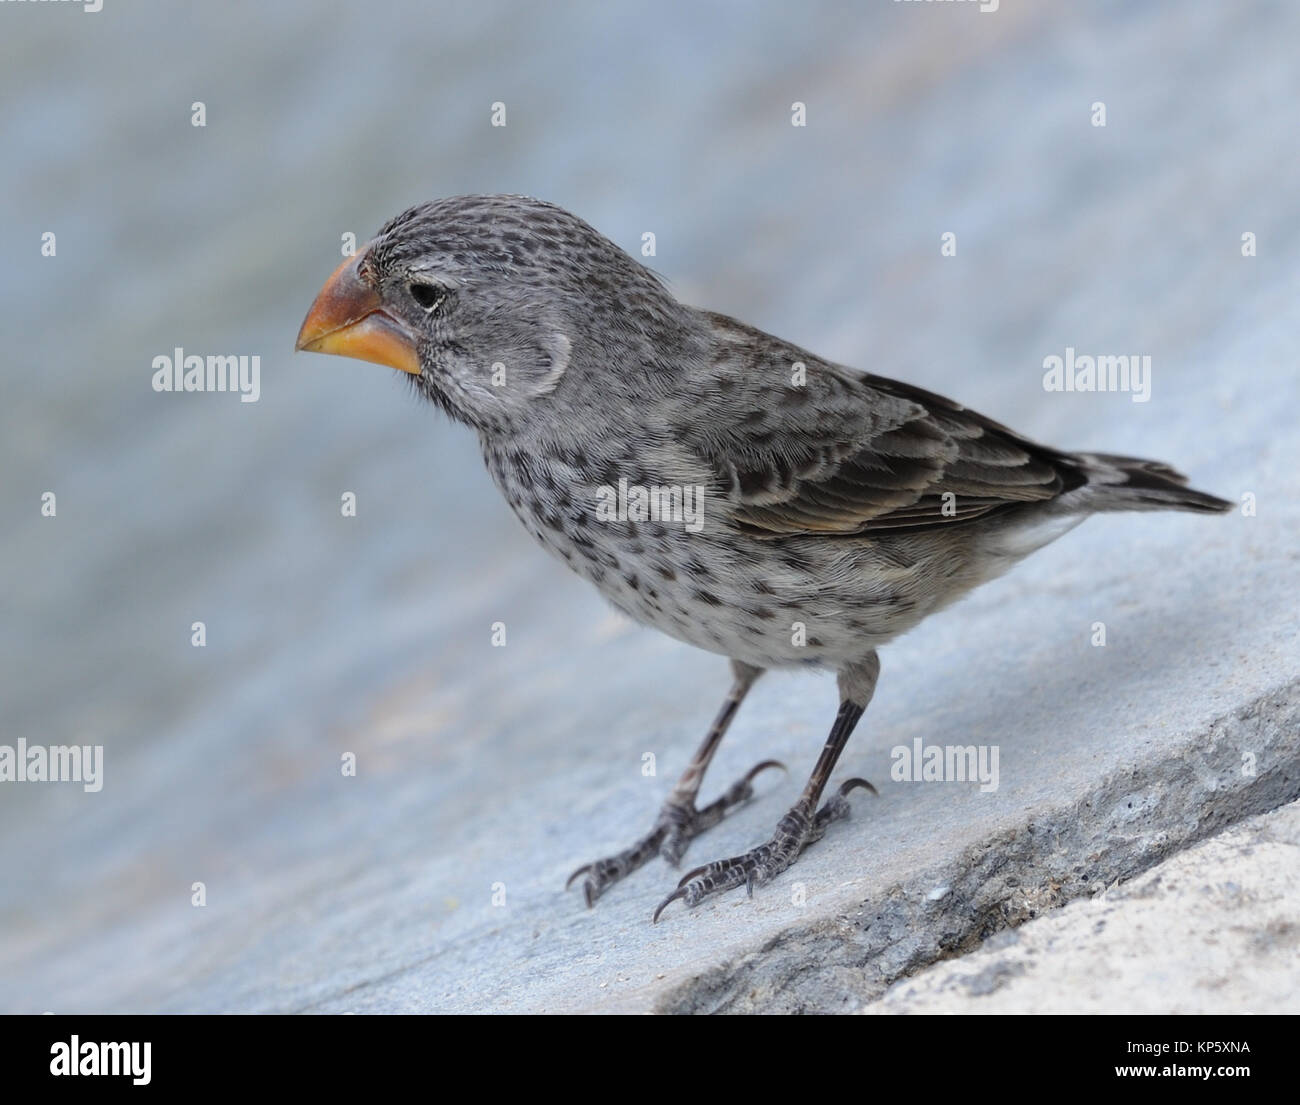 A female large ground finch (Geospiza magnirostris). This bird has an enormous beak and associated musculature, - Stock Image